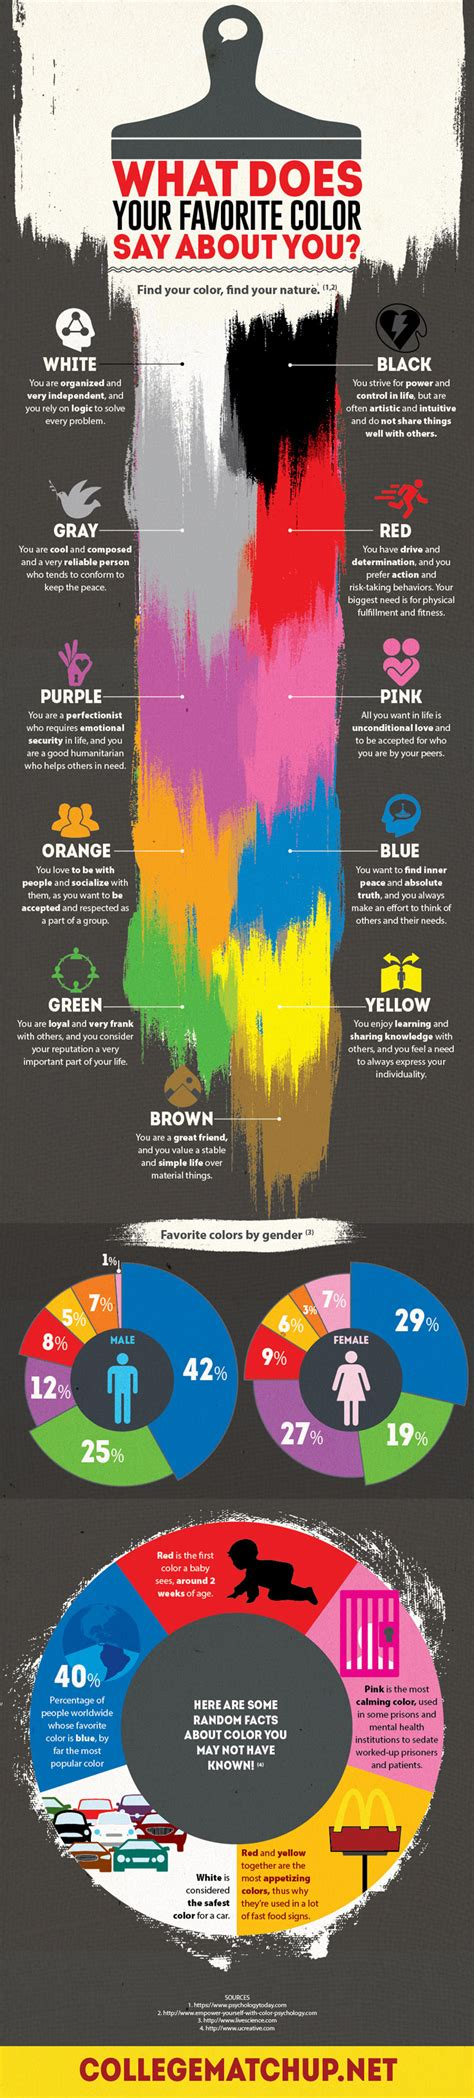 what is your favorite color what does your favorite color say about you infographic